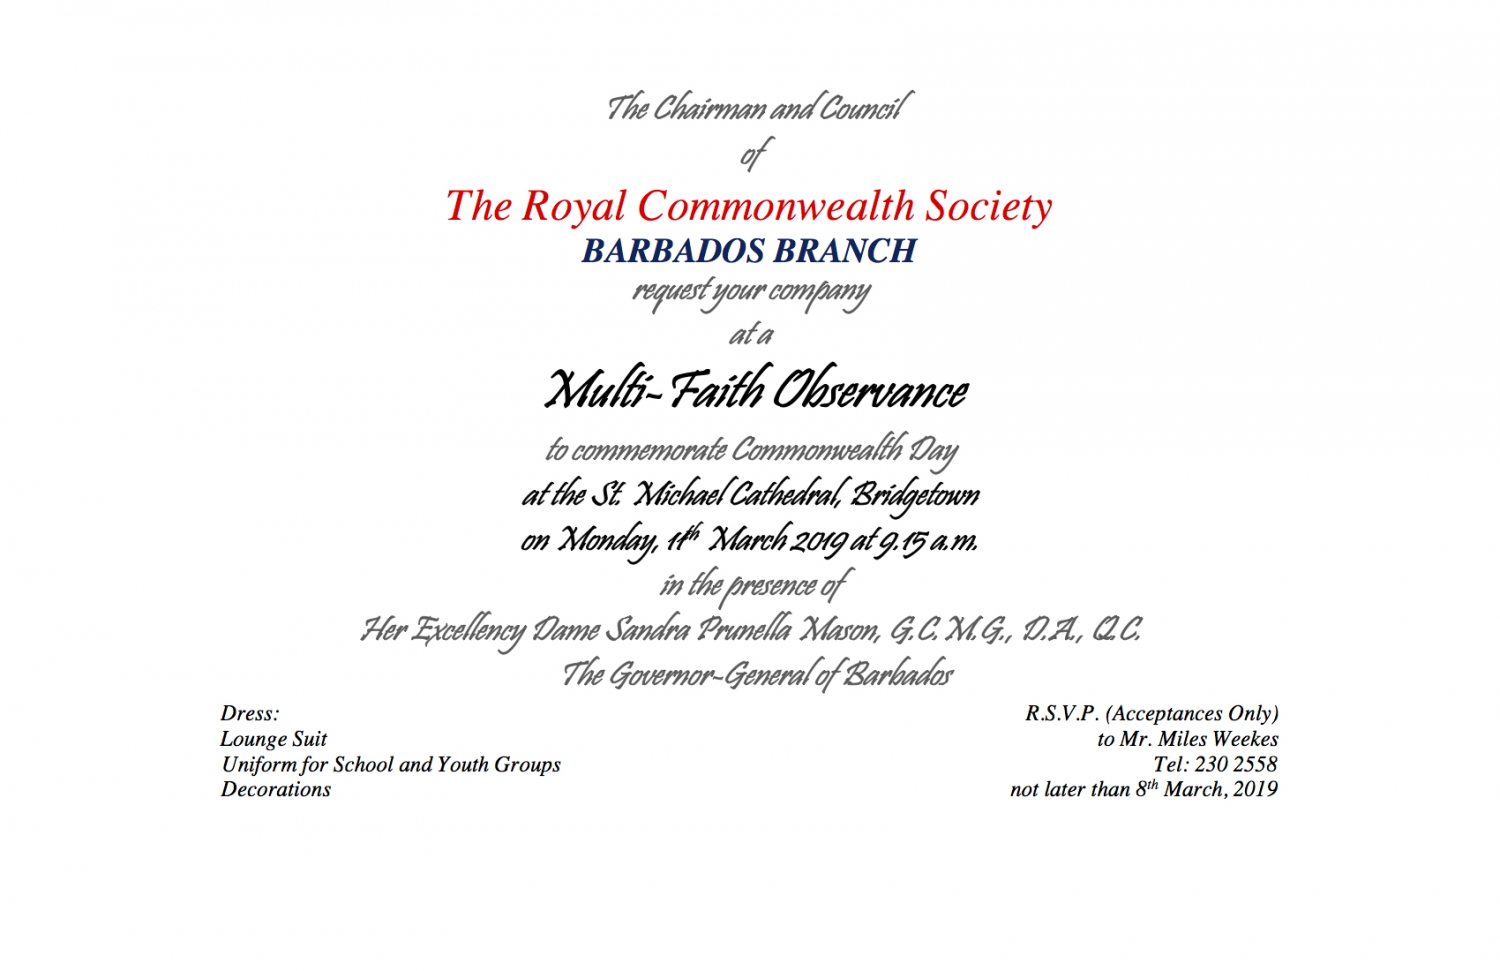 The Royal Commonwealth Society Barbados Branch - Multi-Faith Observance